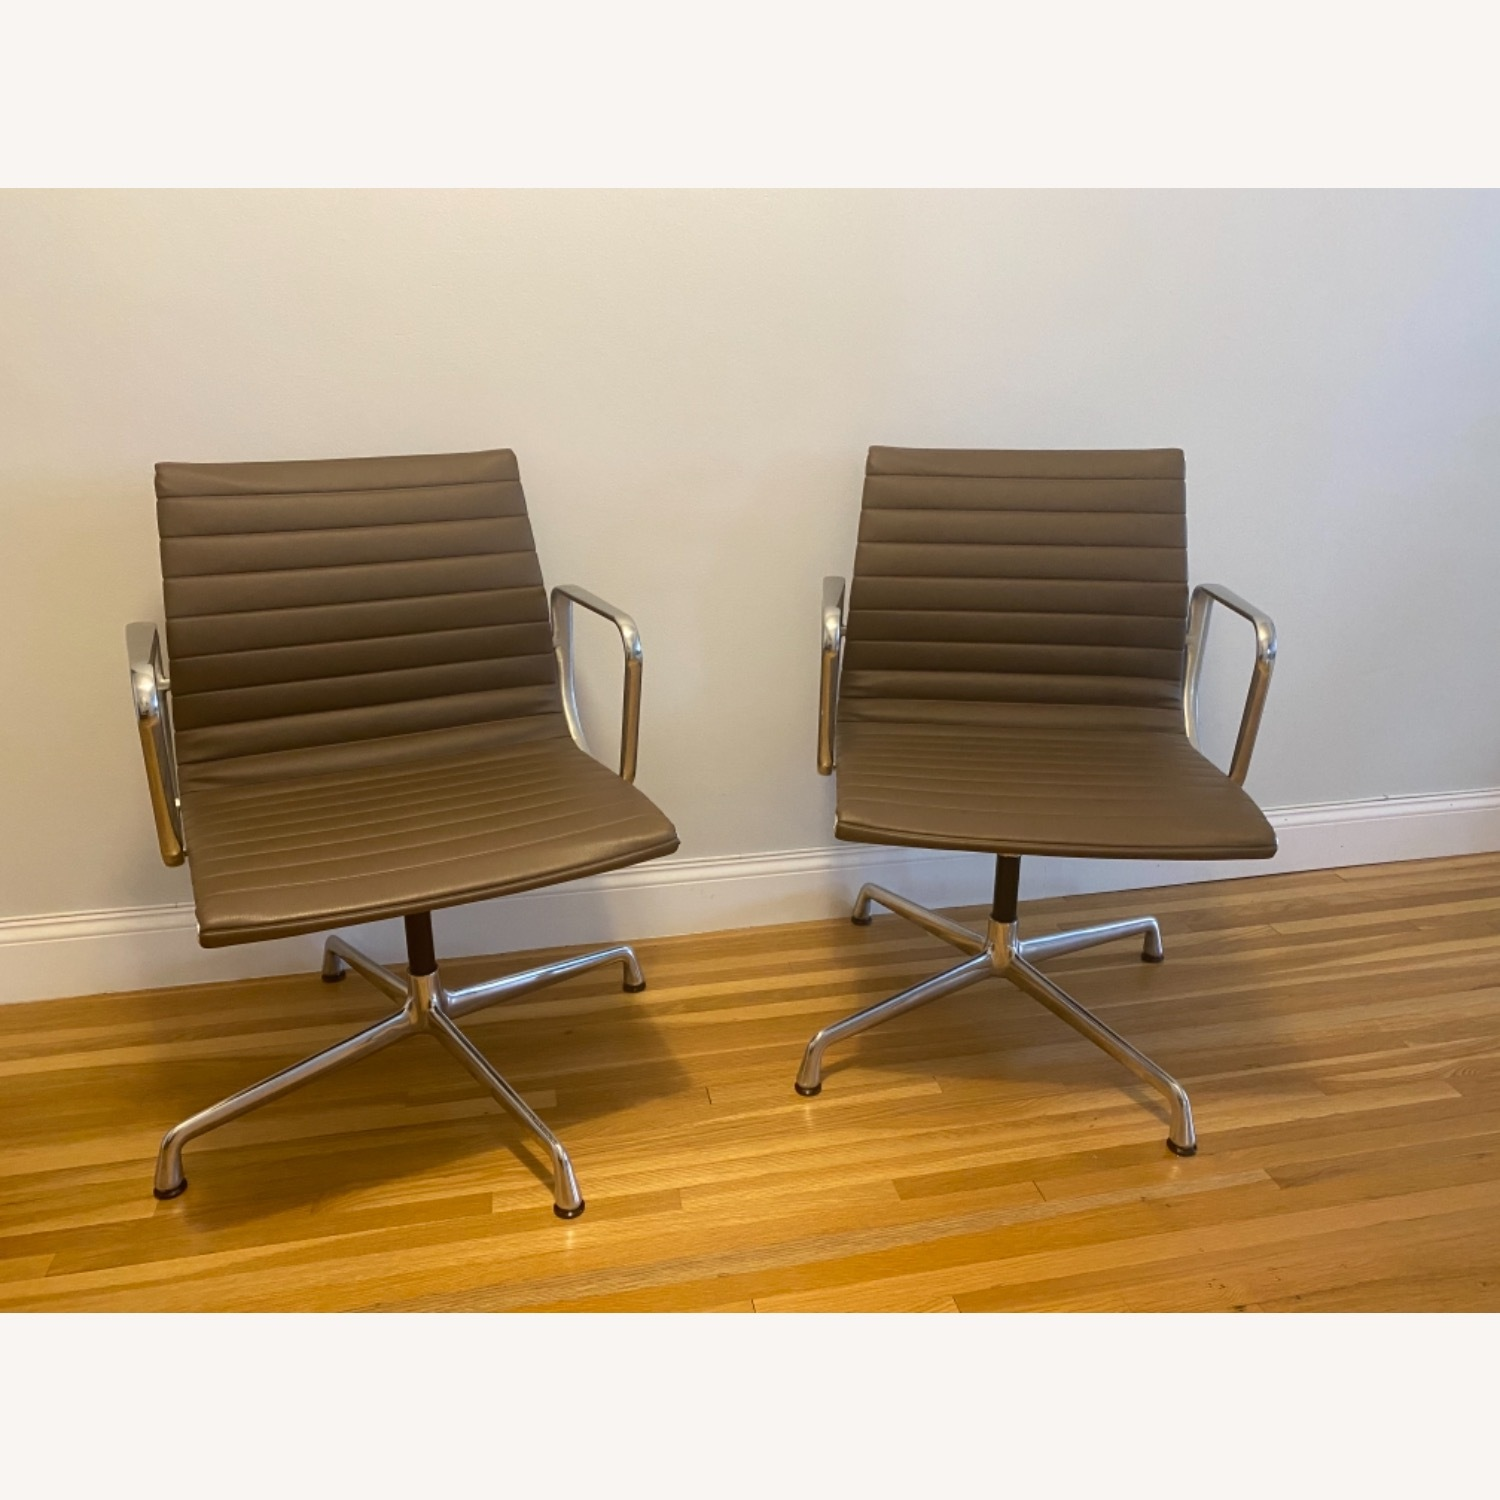 Herman Miller Eames Arm Side Chairs - image-1